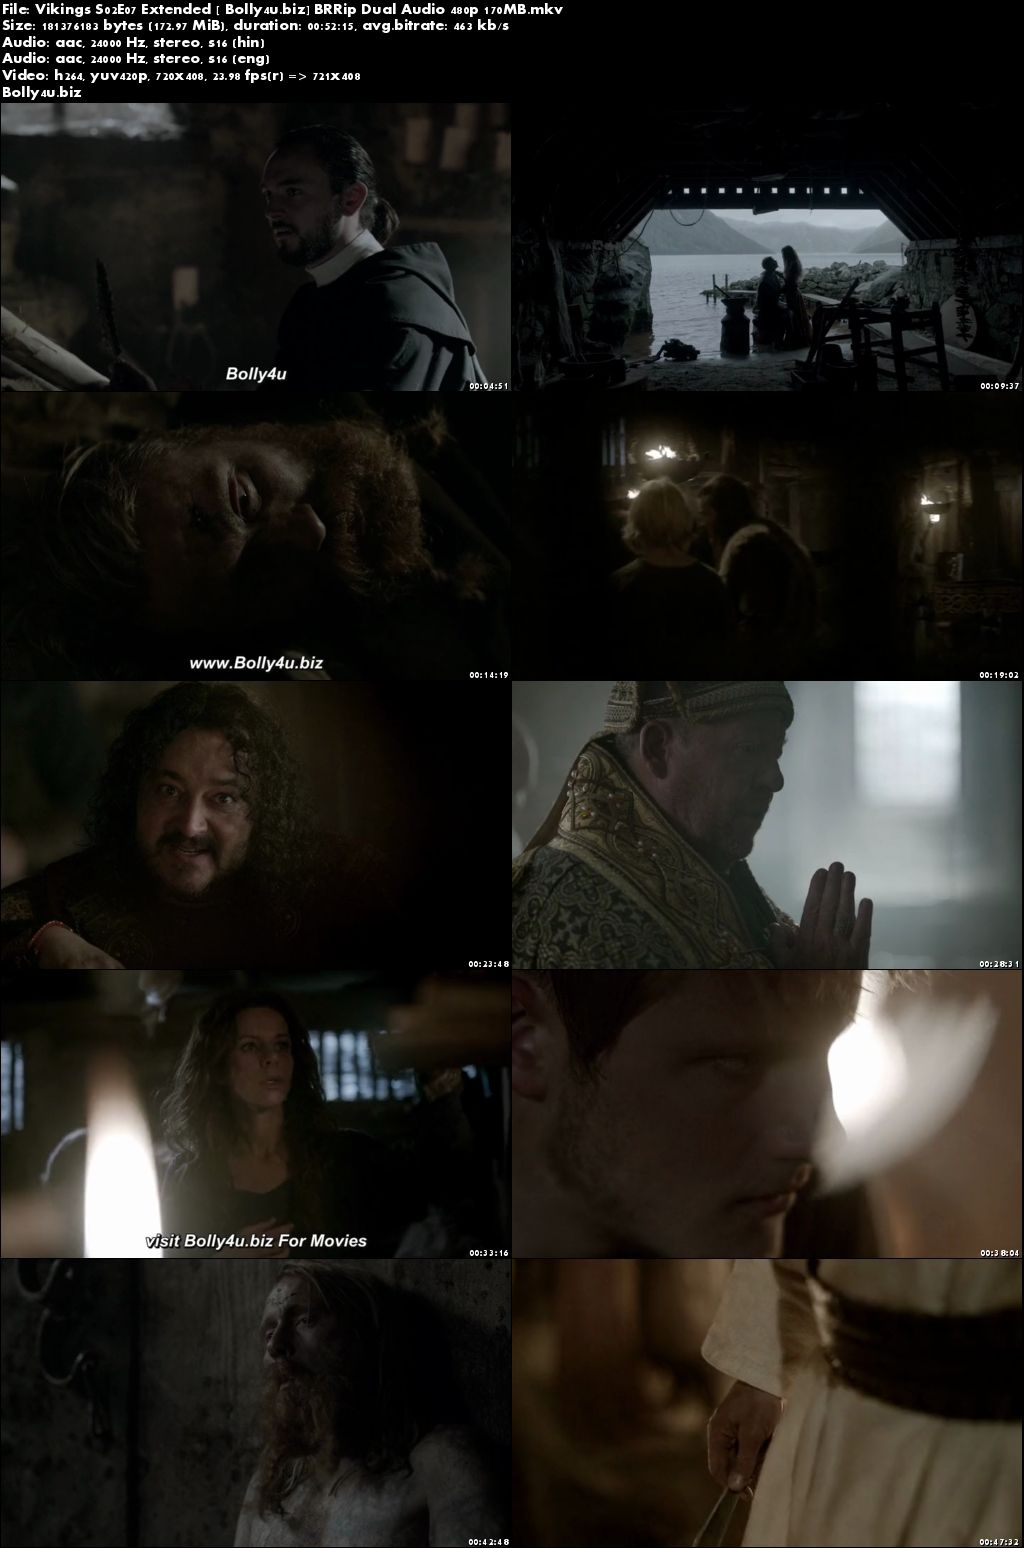 Vikings S02E07 Extended BRRip 170MB Hindi Dual Audio 480p Download